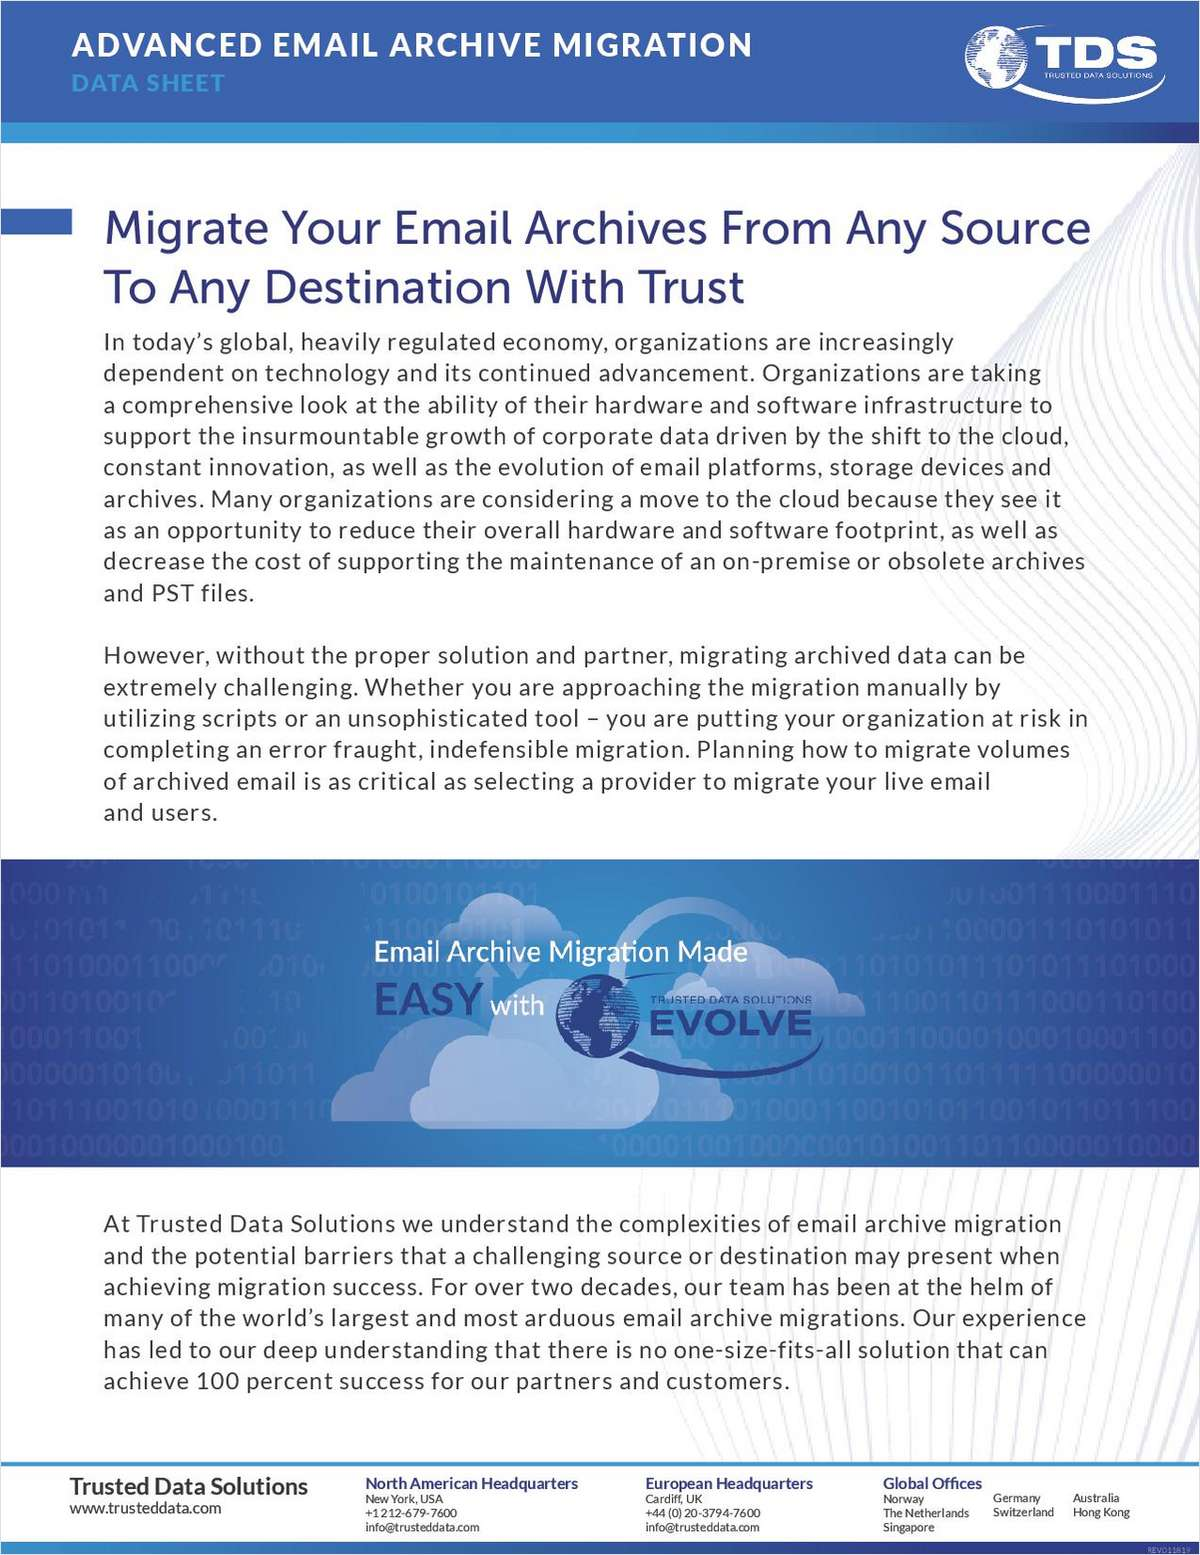 Advanced Email Archive Migration